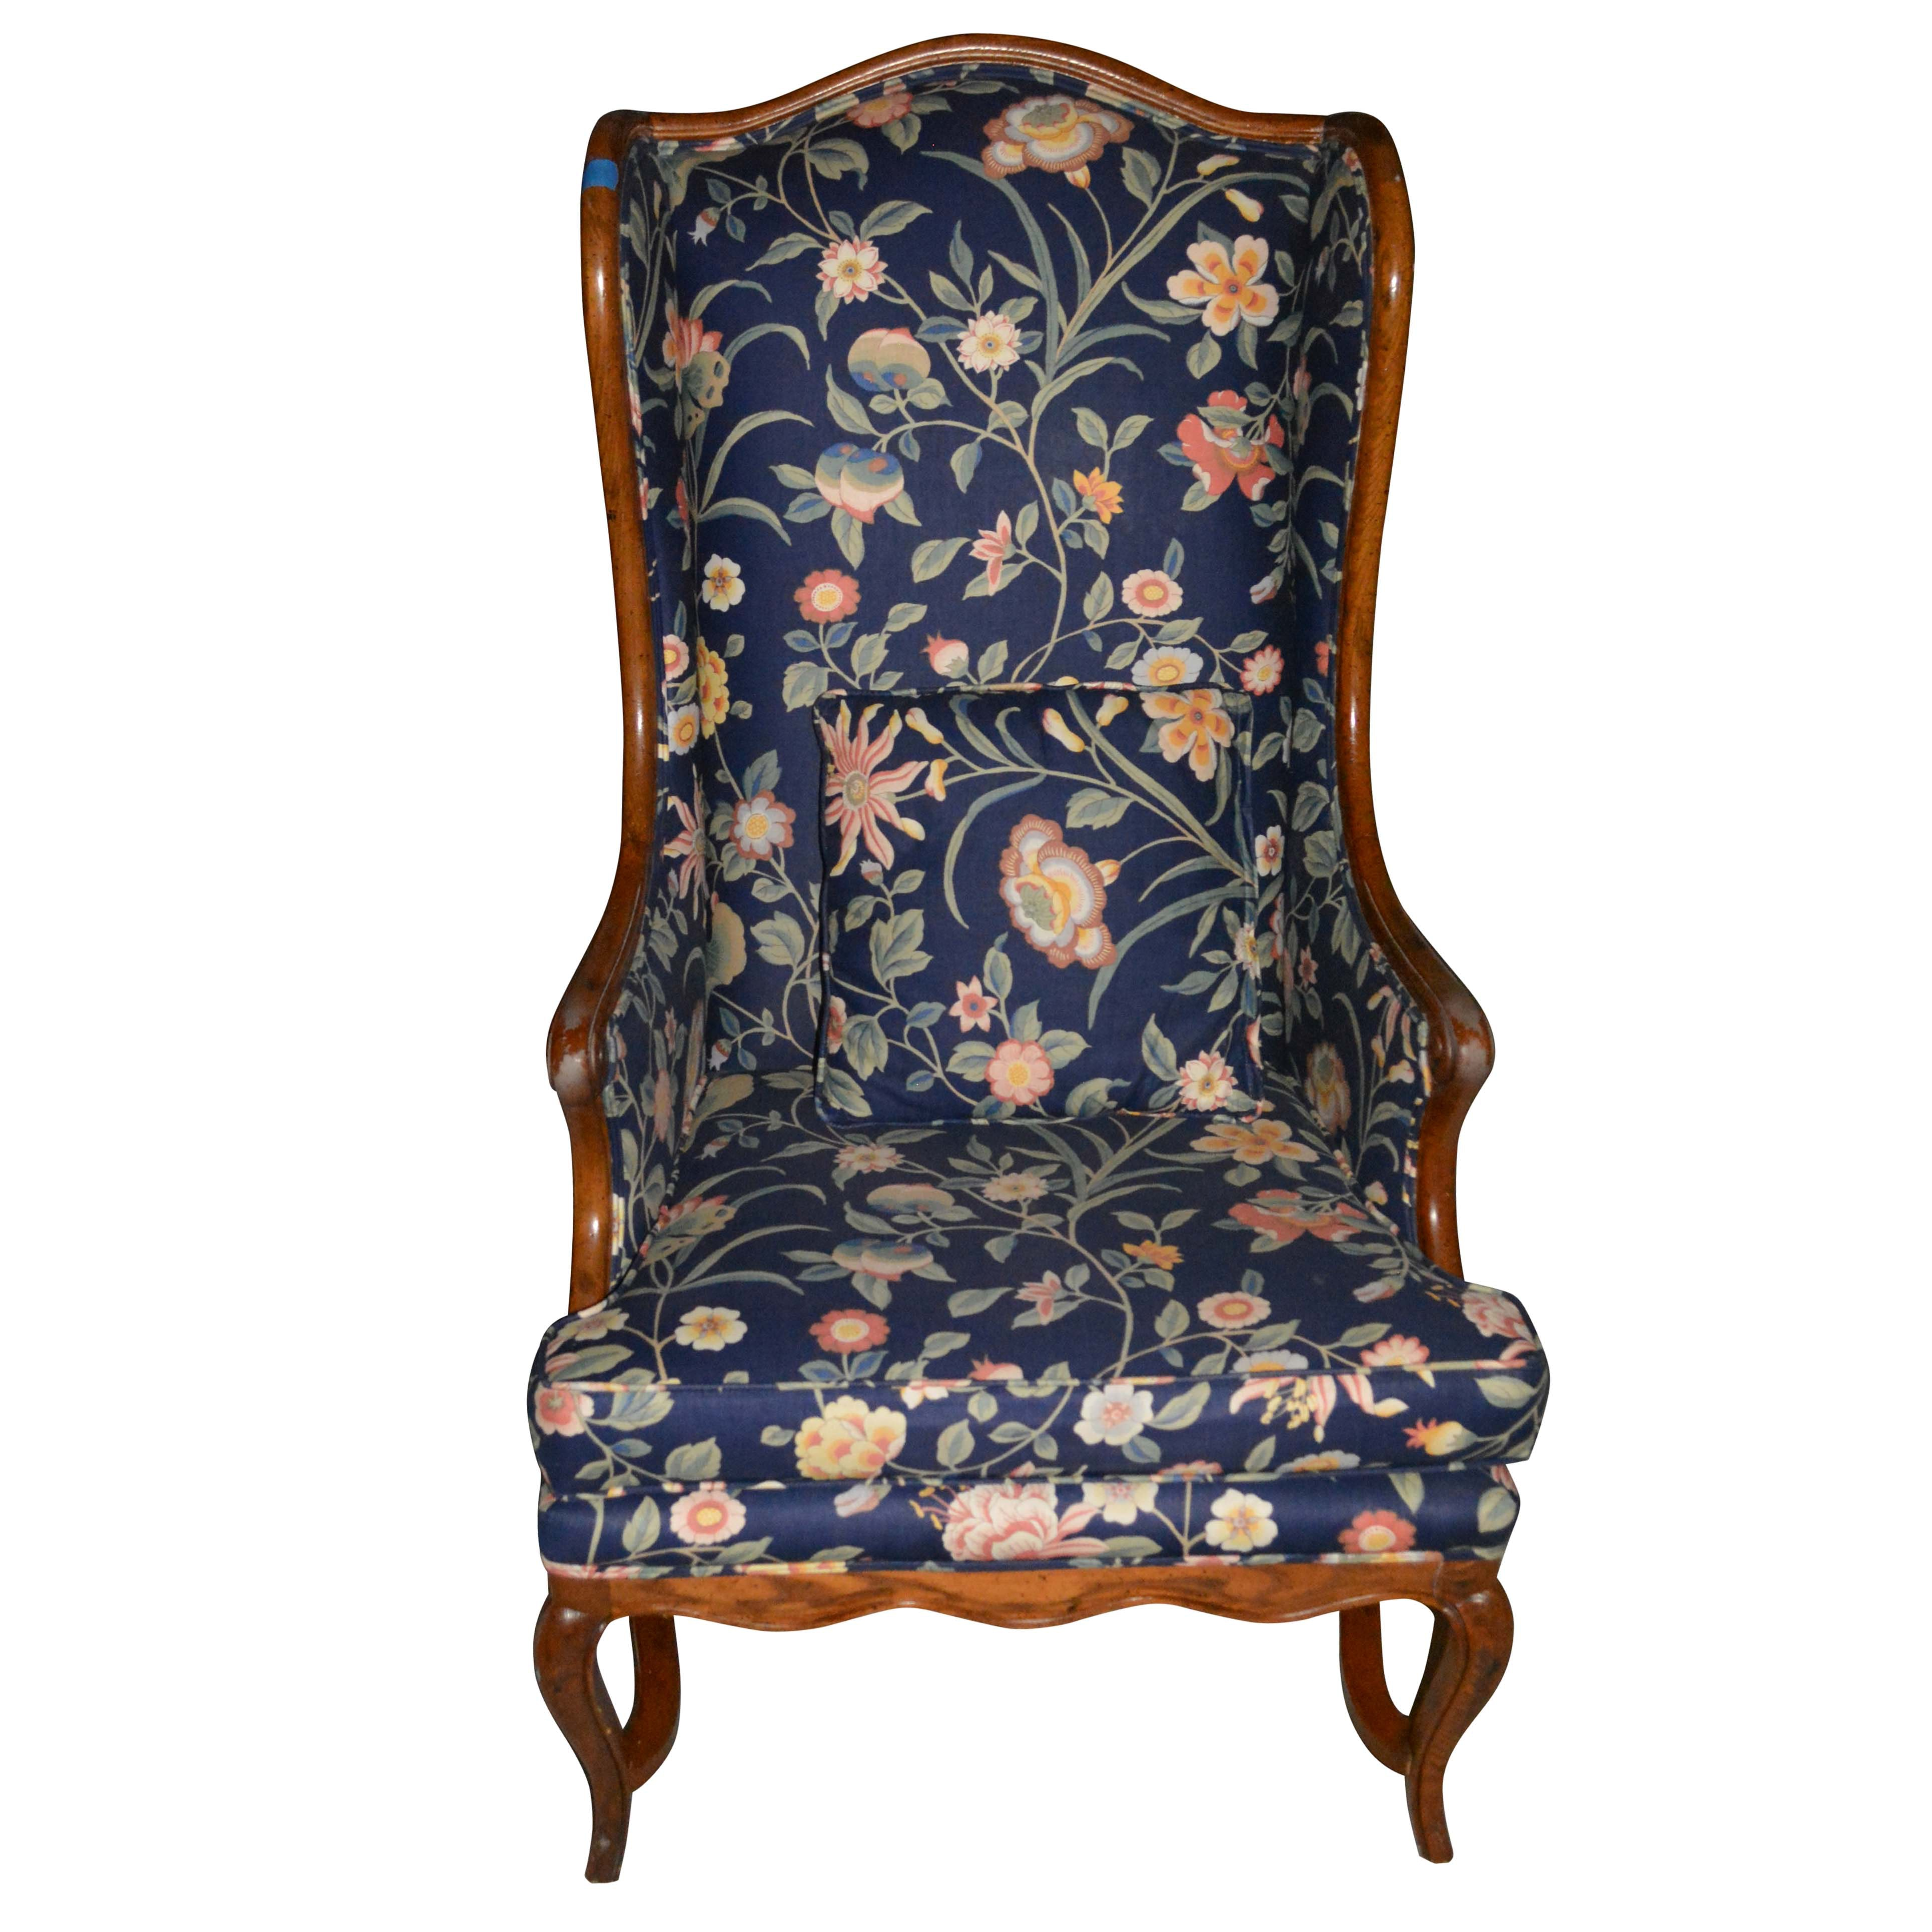 Vintage French Provincial Style Floral Upholstered Wingback Chair by Honeycutt's